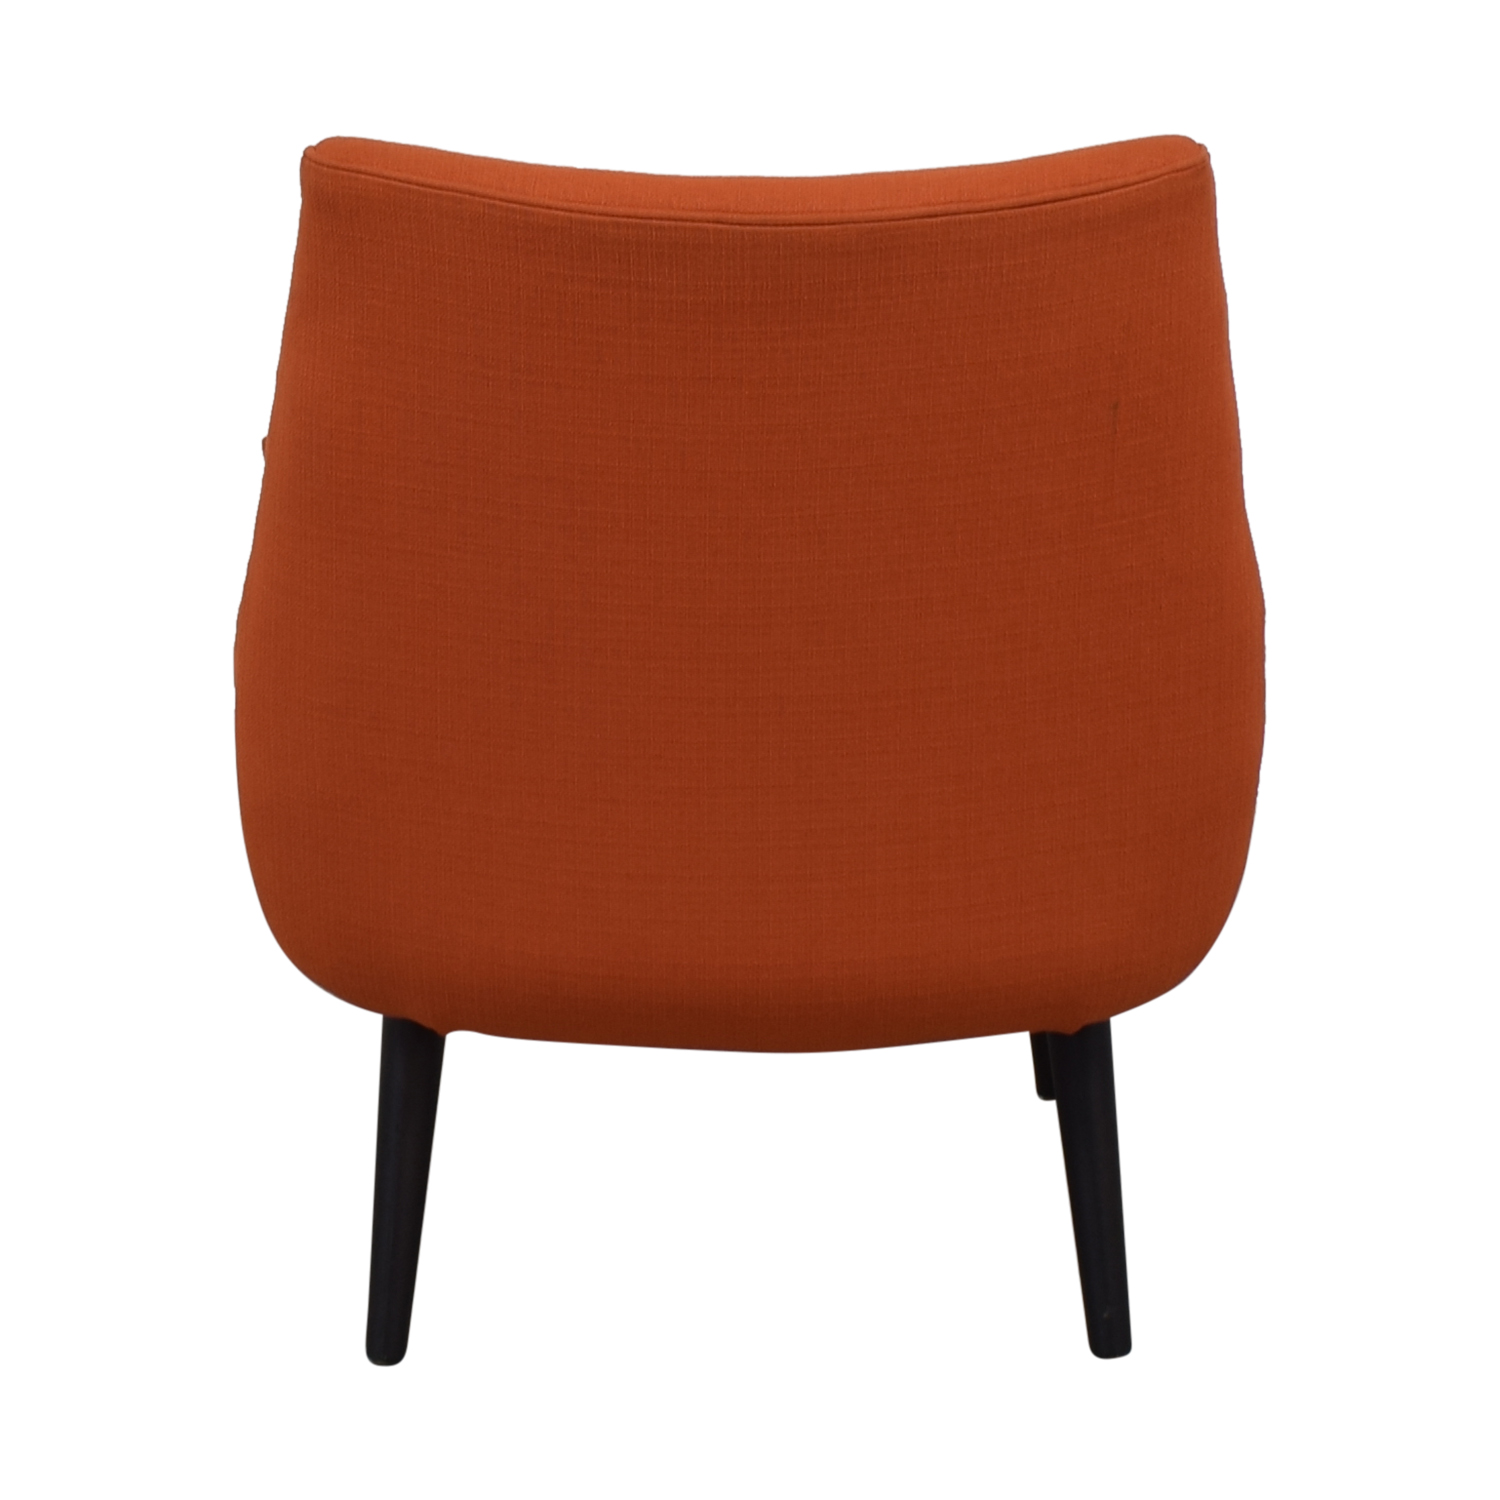 Johnathan Alder Mrs. Godfrey's Orange Accent Chair Johnathan Alder